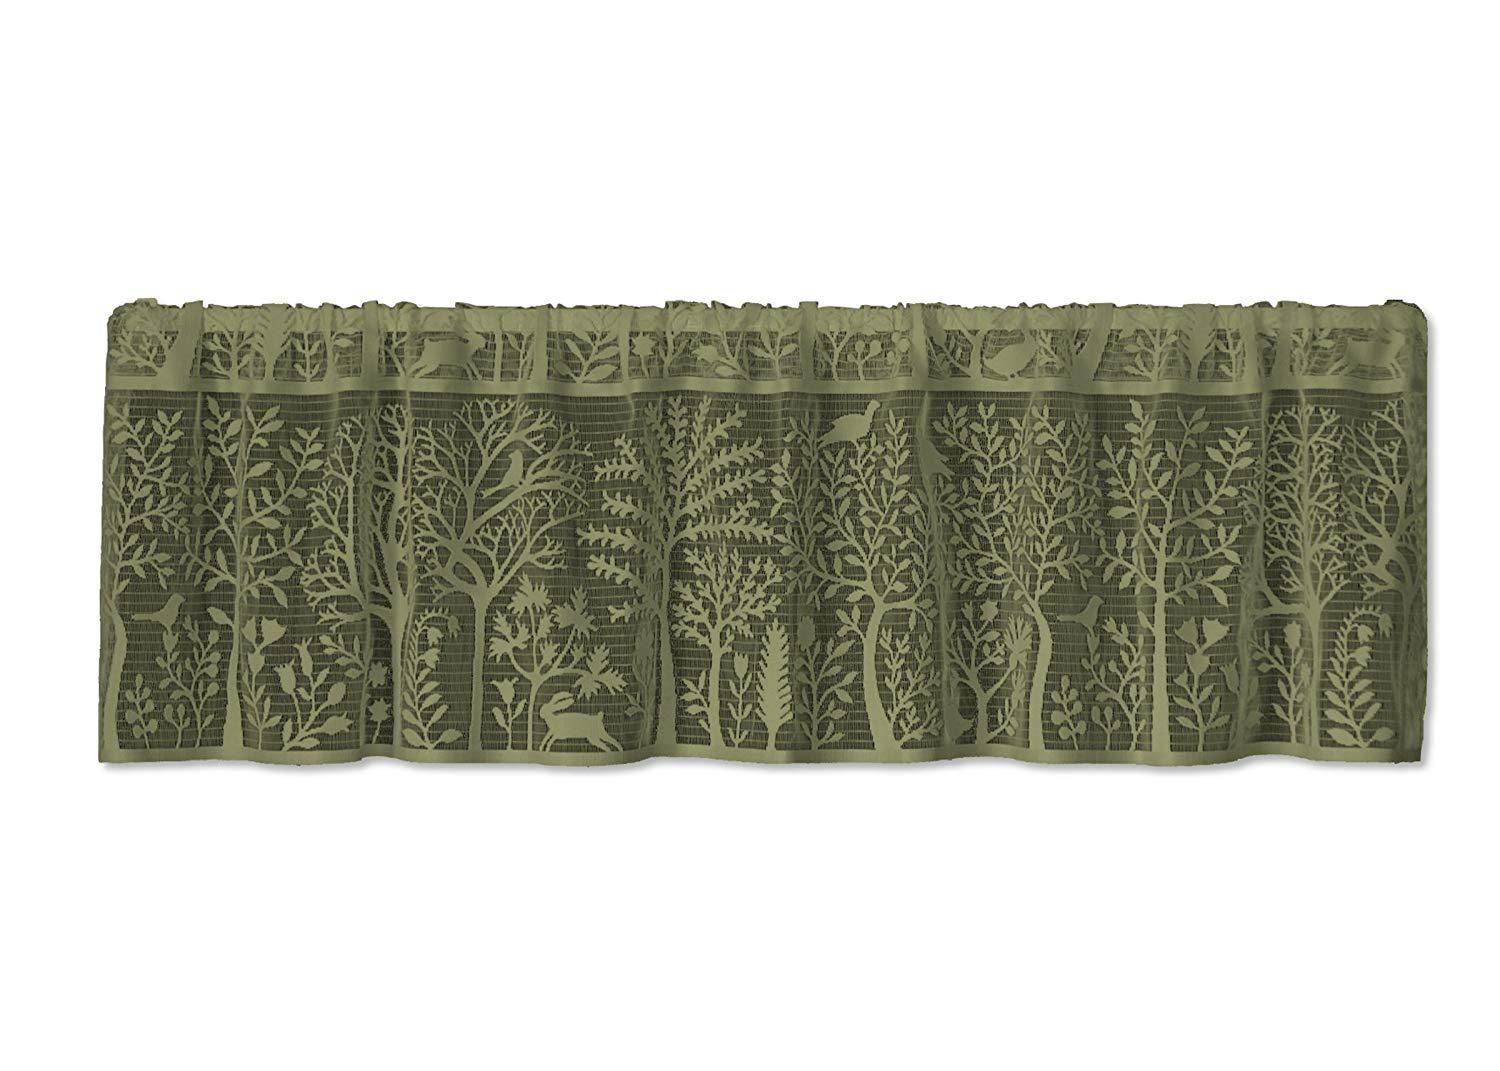 Heritage Lace Rabbit Hollow Collection Valances Tiers